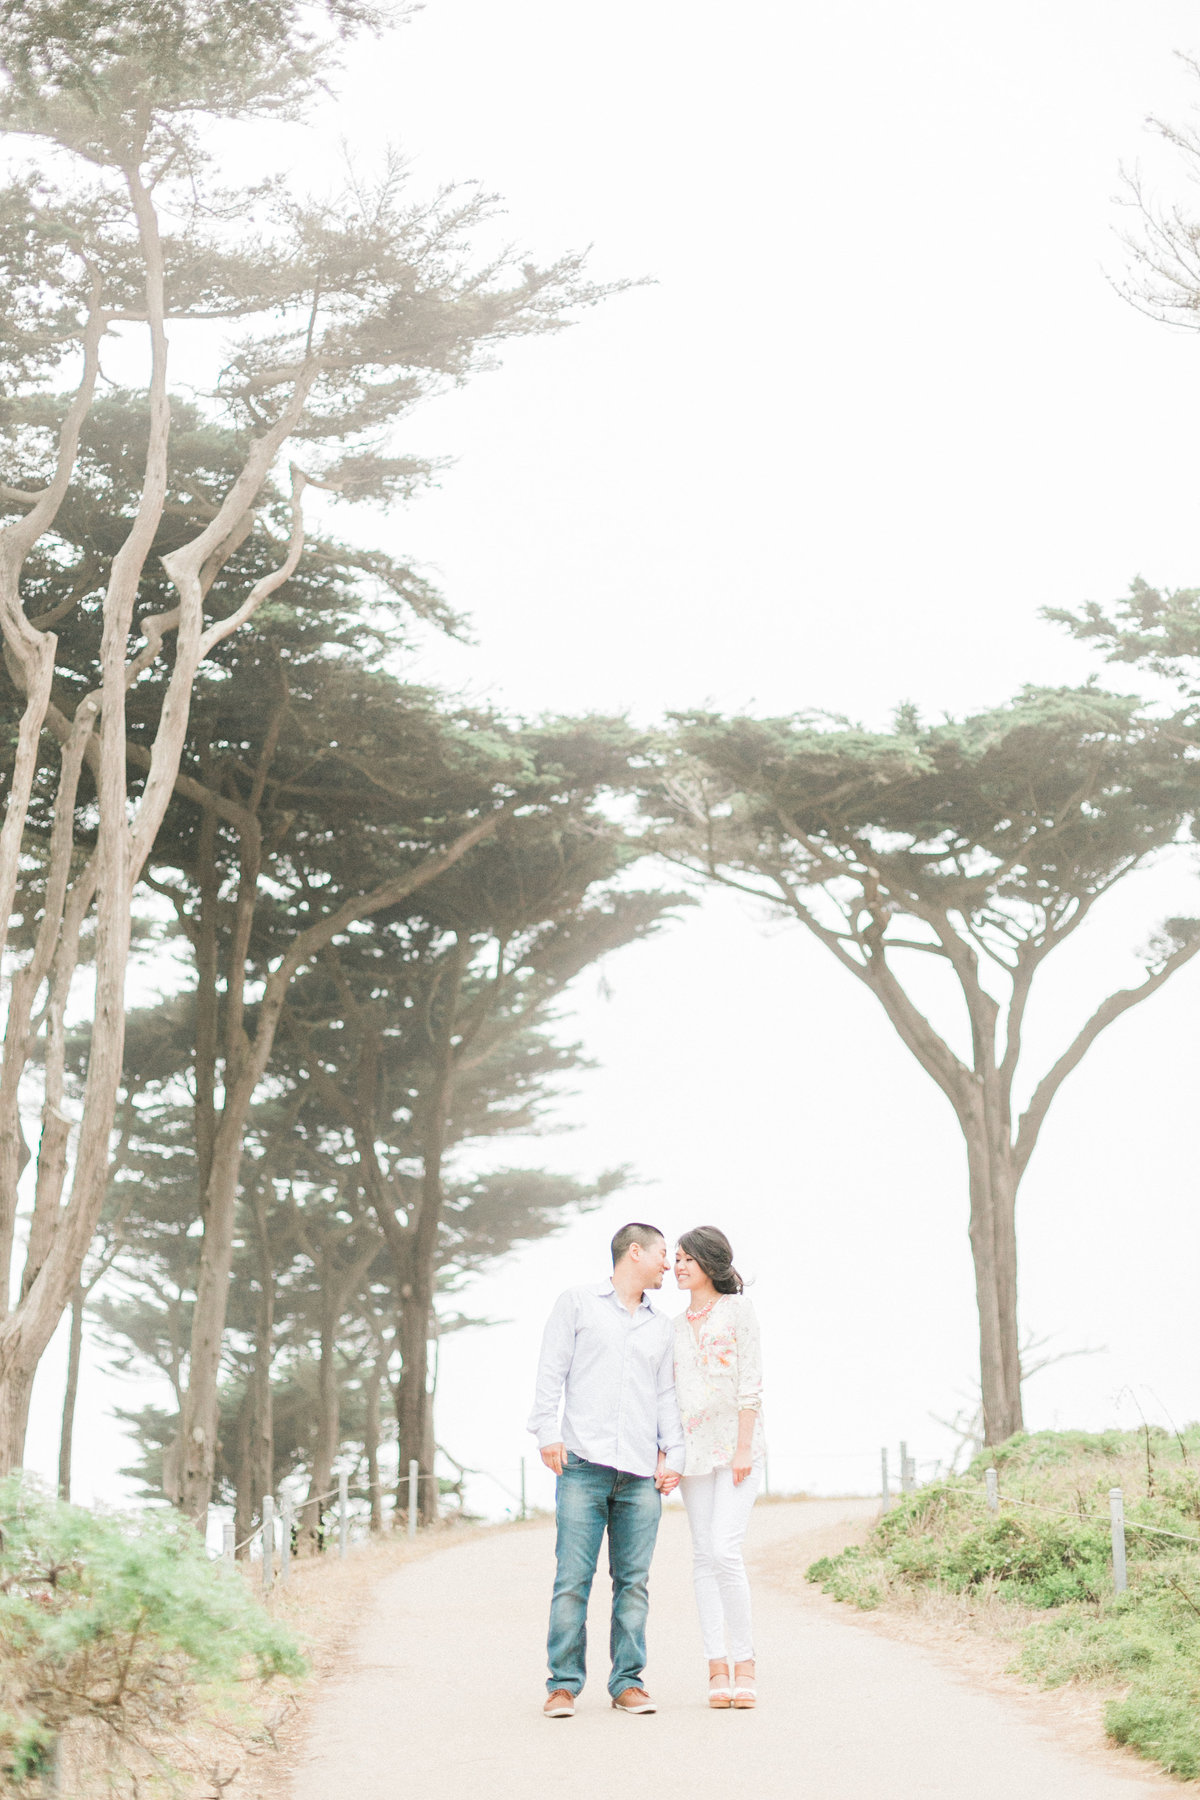 028_foggy-SanFrancisco-engagement